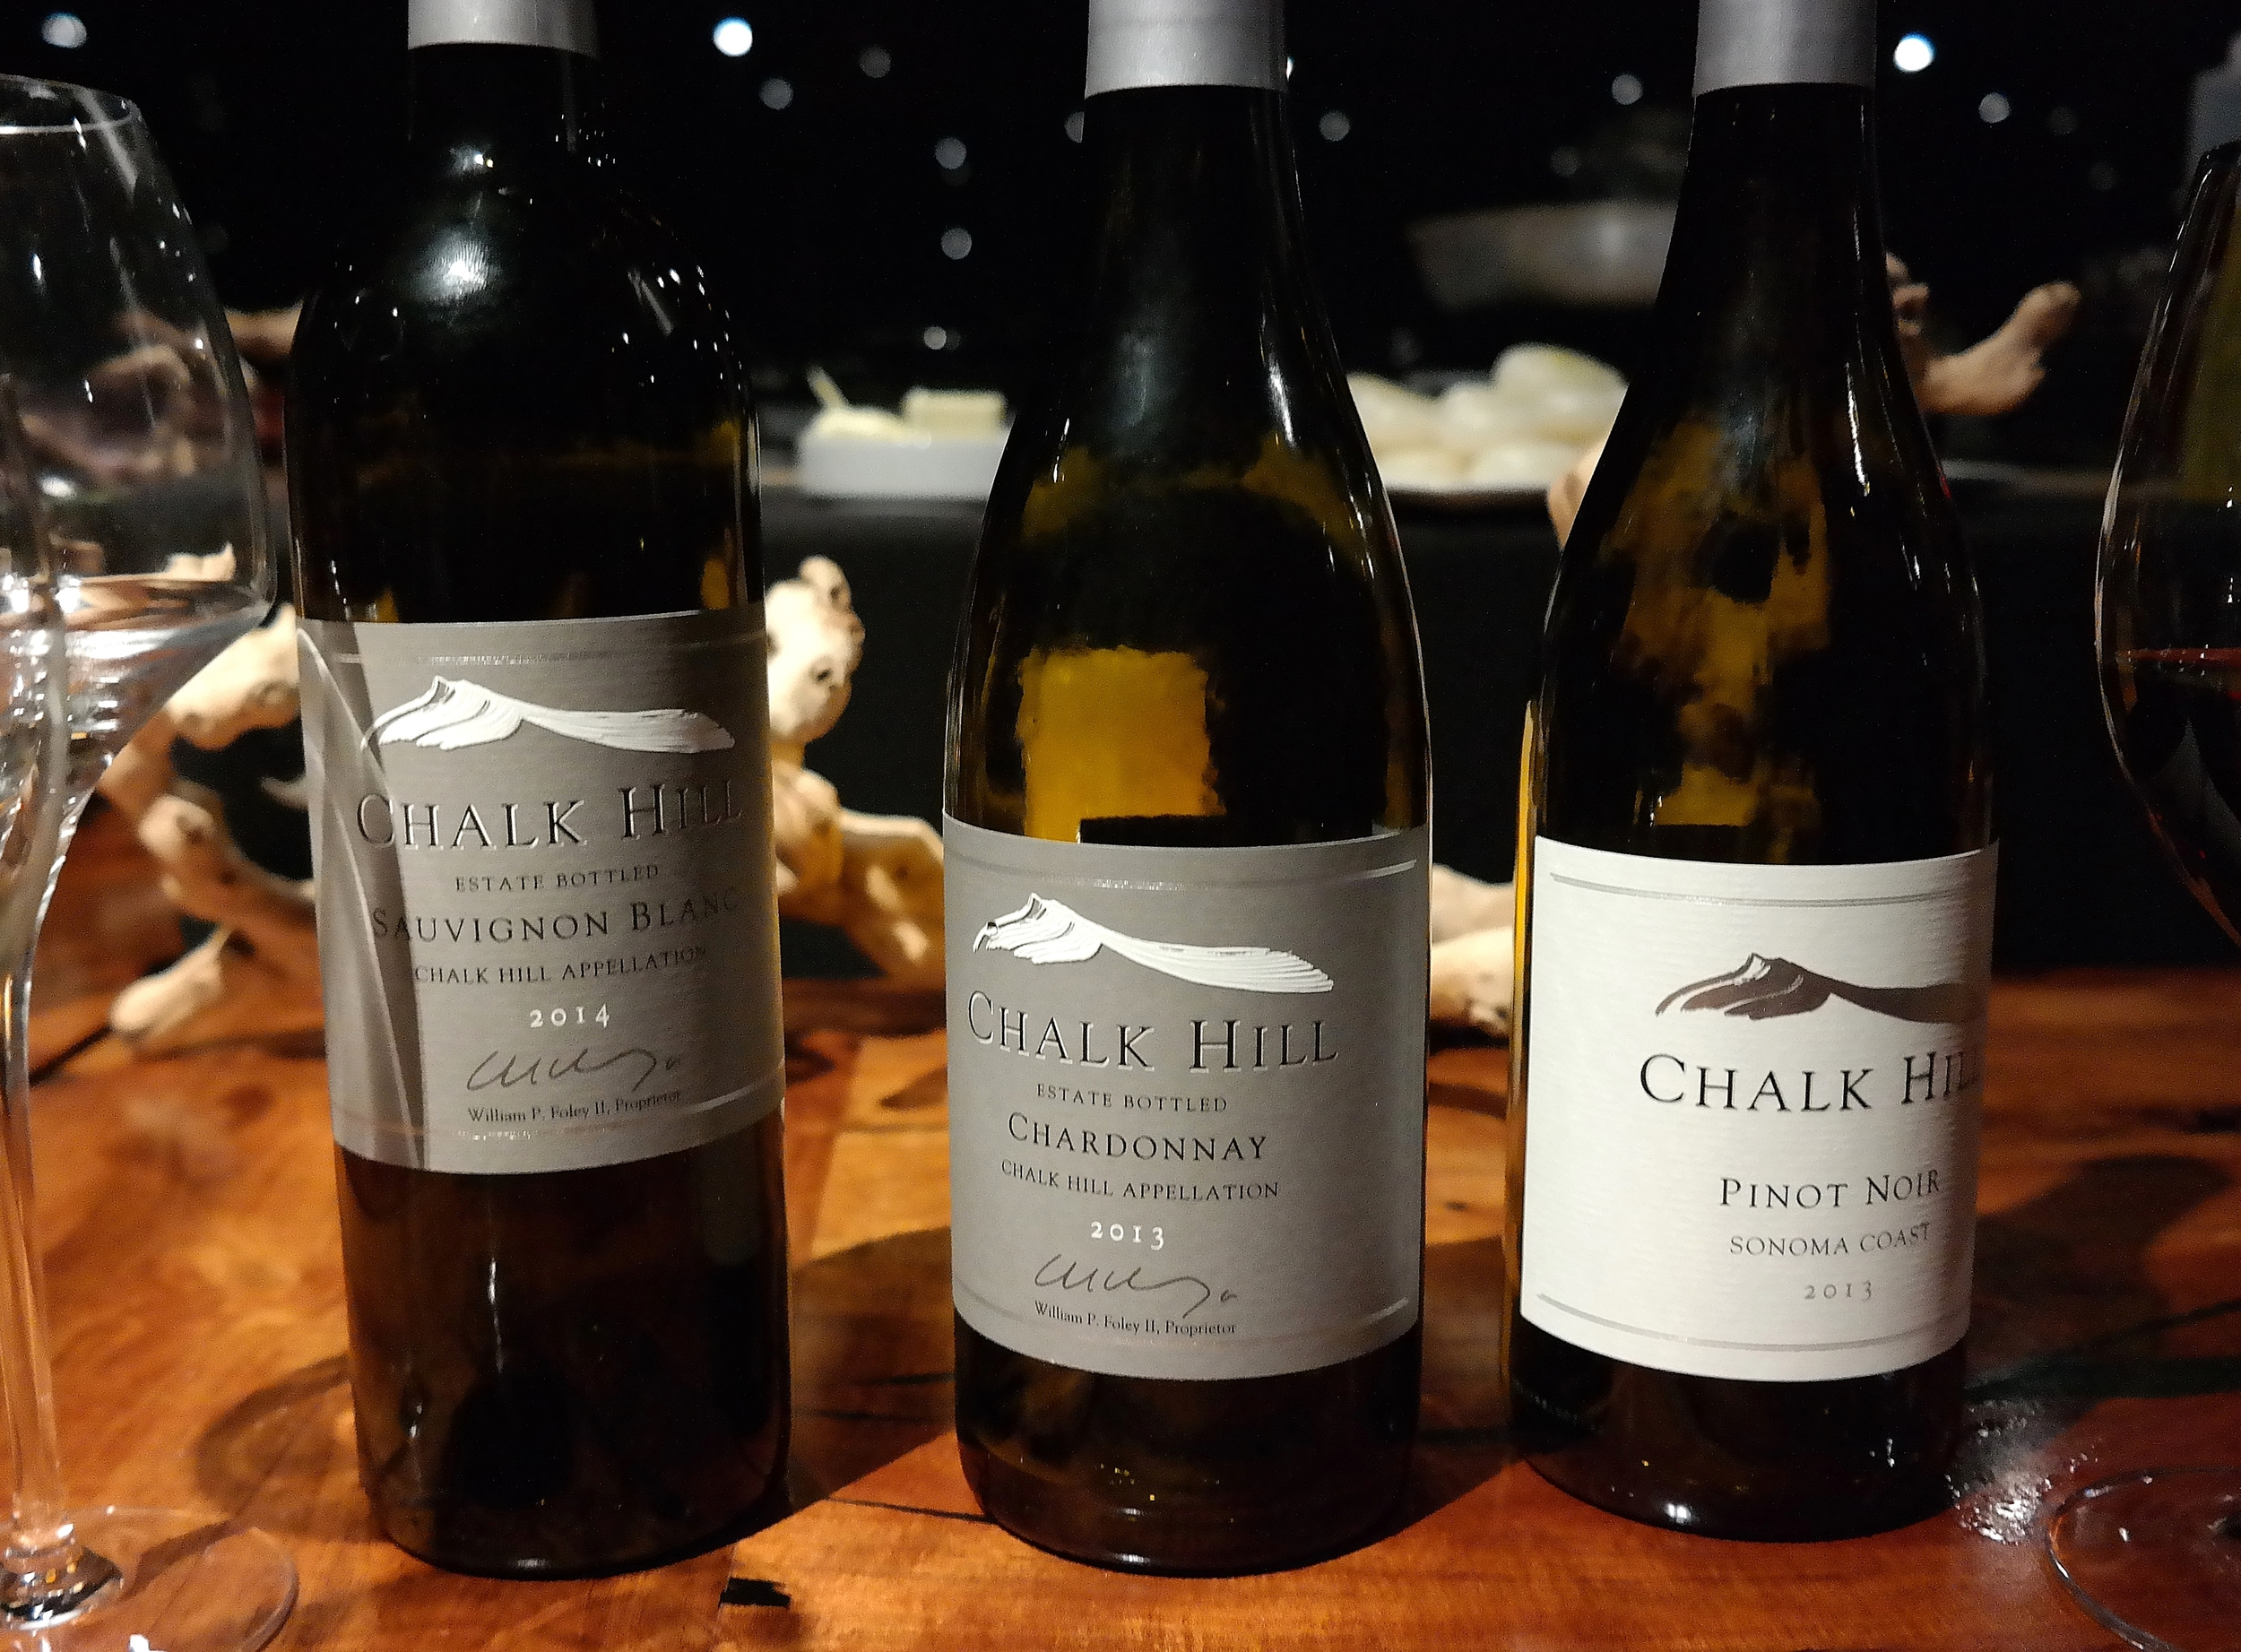 Our first three wine pairings